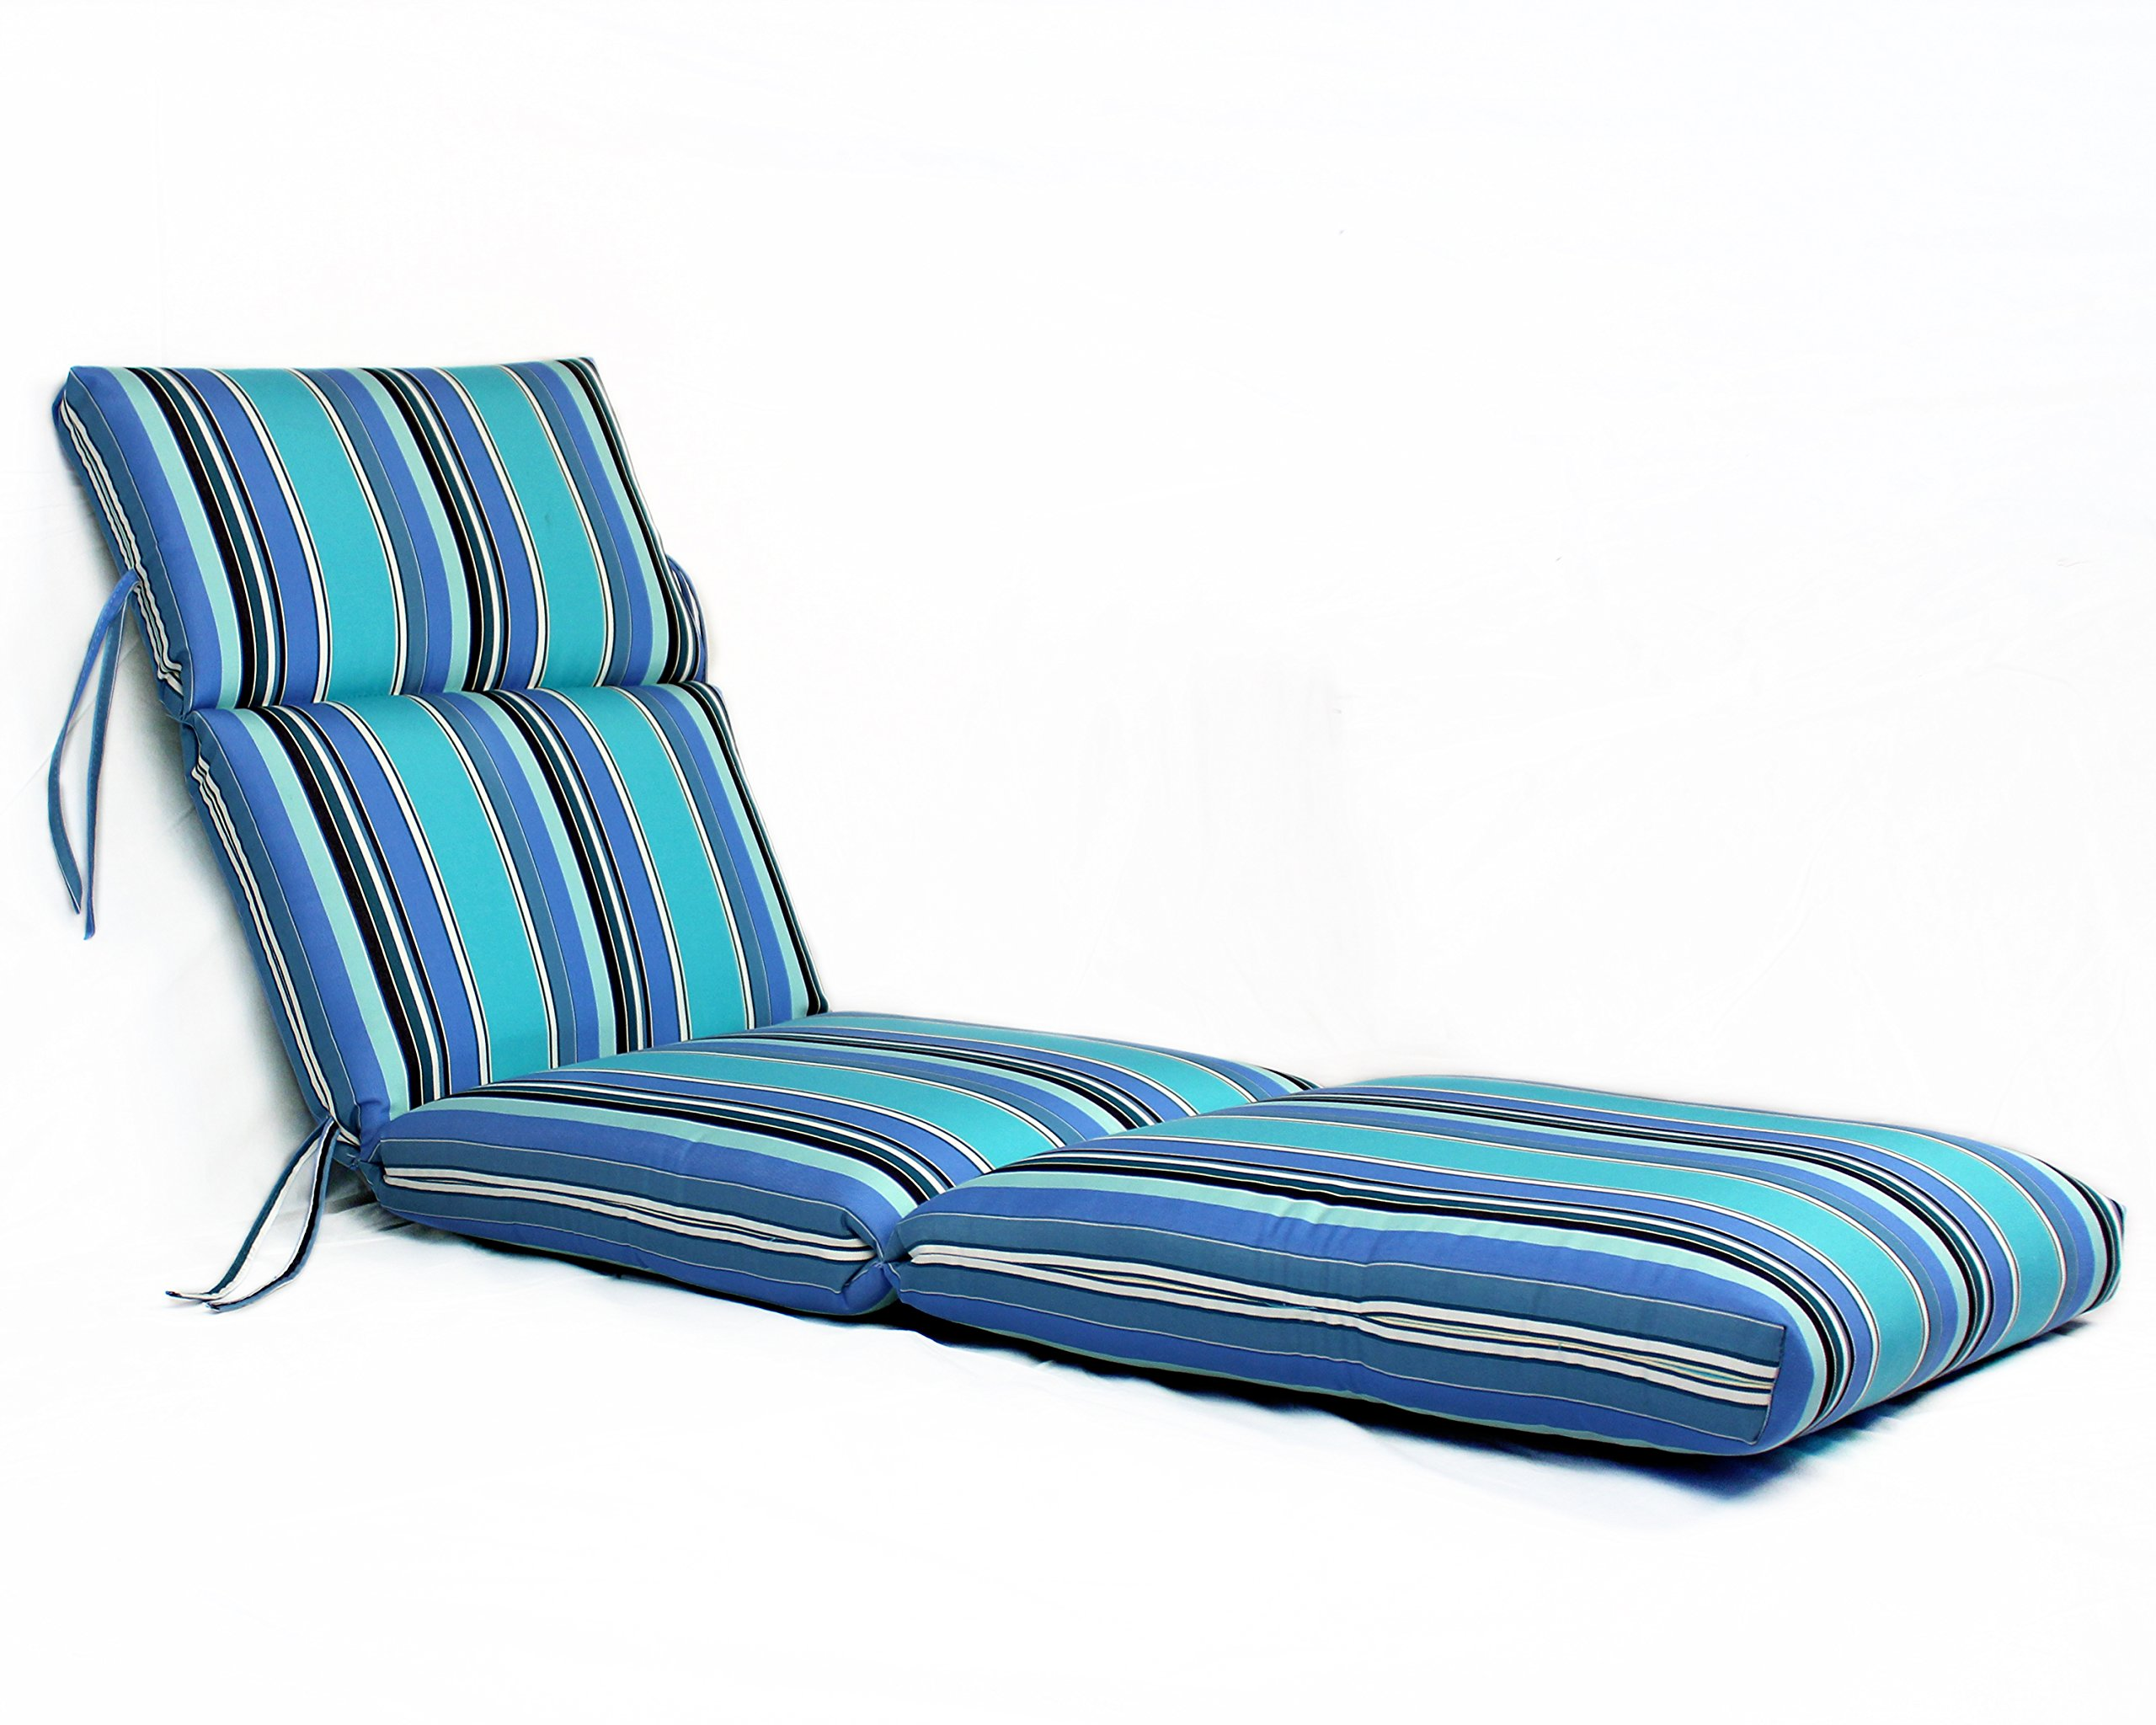 Comfort Classics Inc. 22W x 72L x 5H Hinge at 26'' Sunbrella Outdoor CHANNELED CHAISE CUSHION in Dolce Oasis Made in USA.